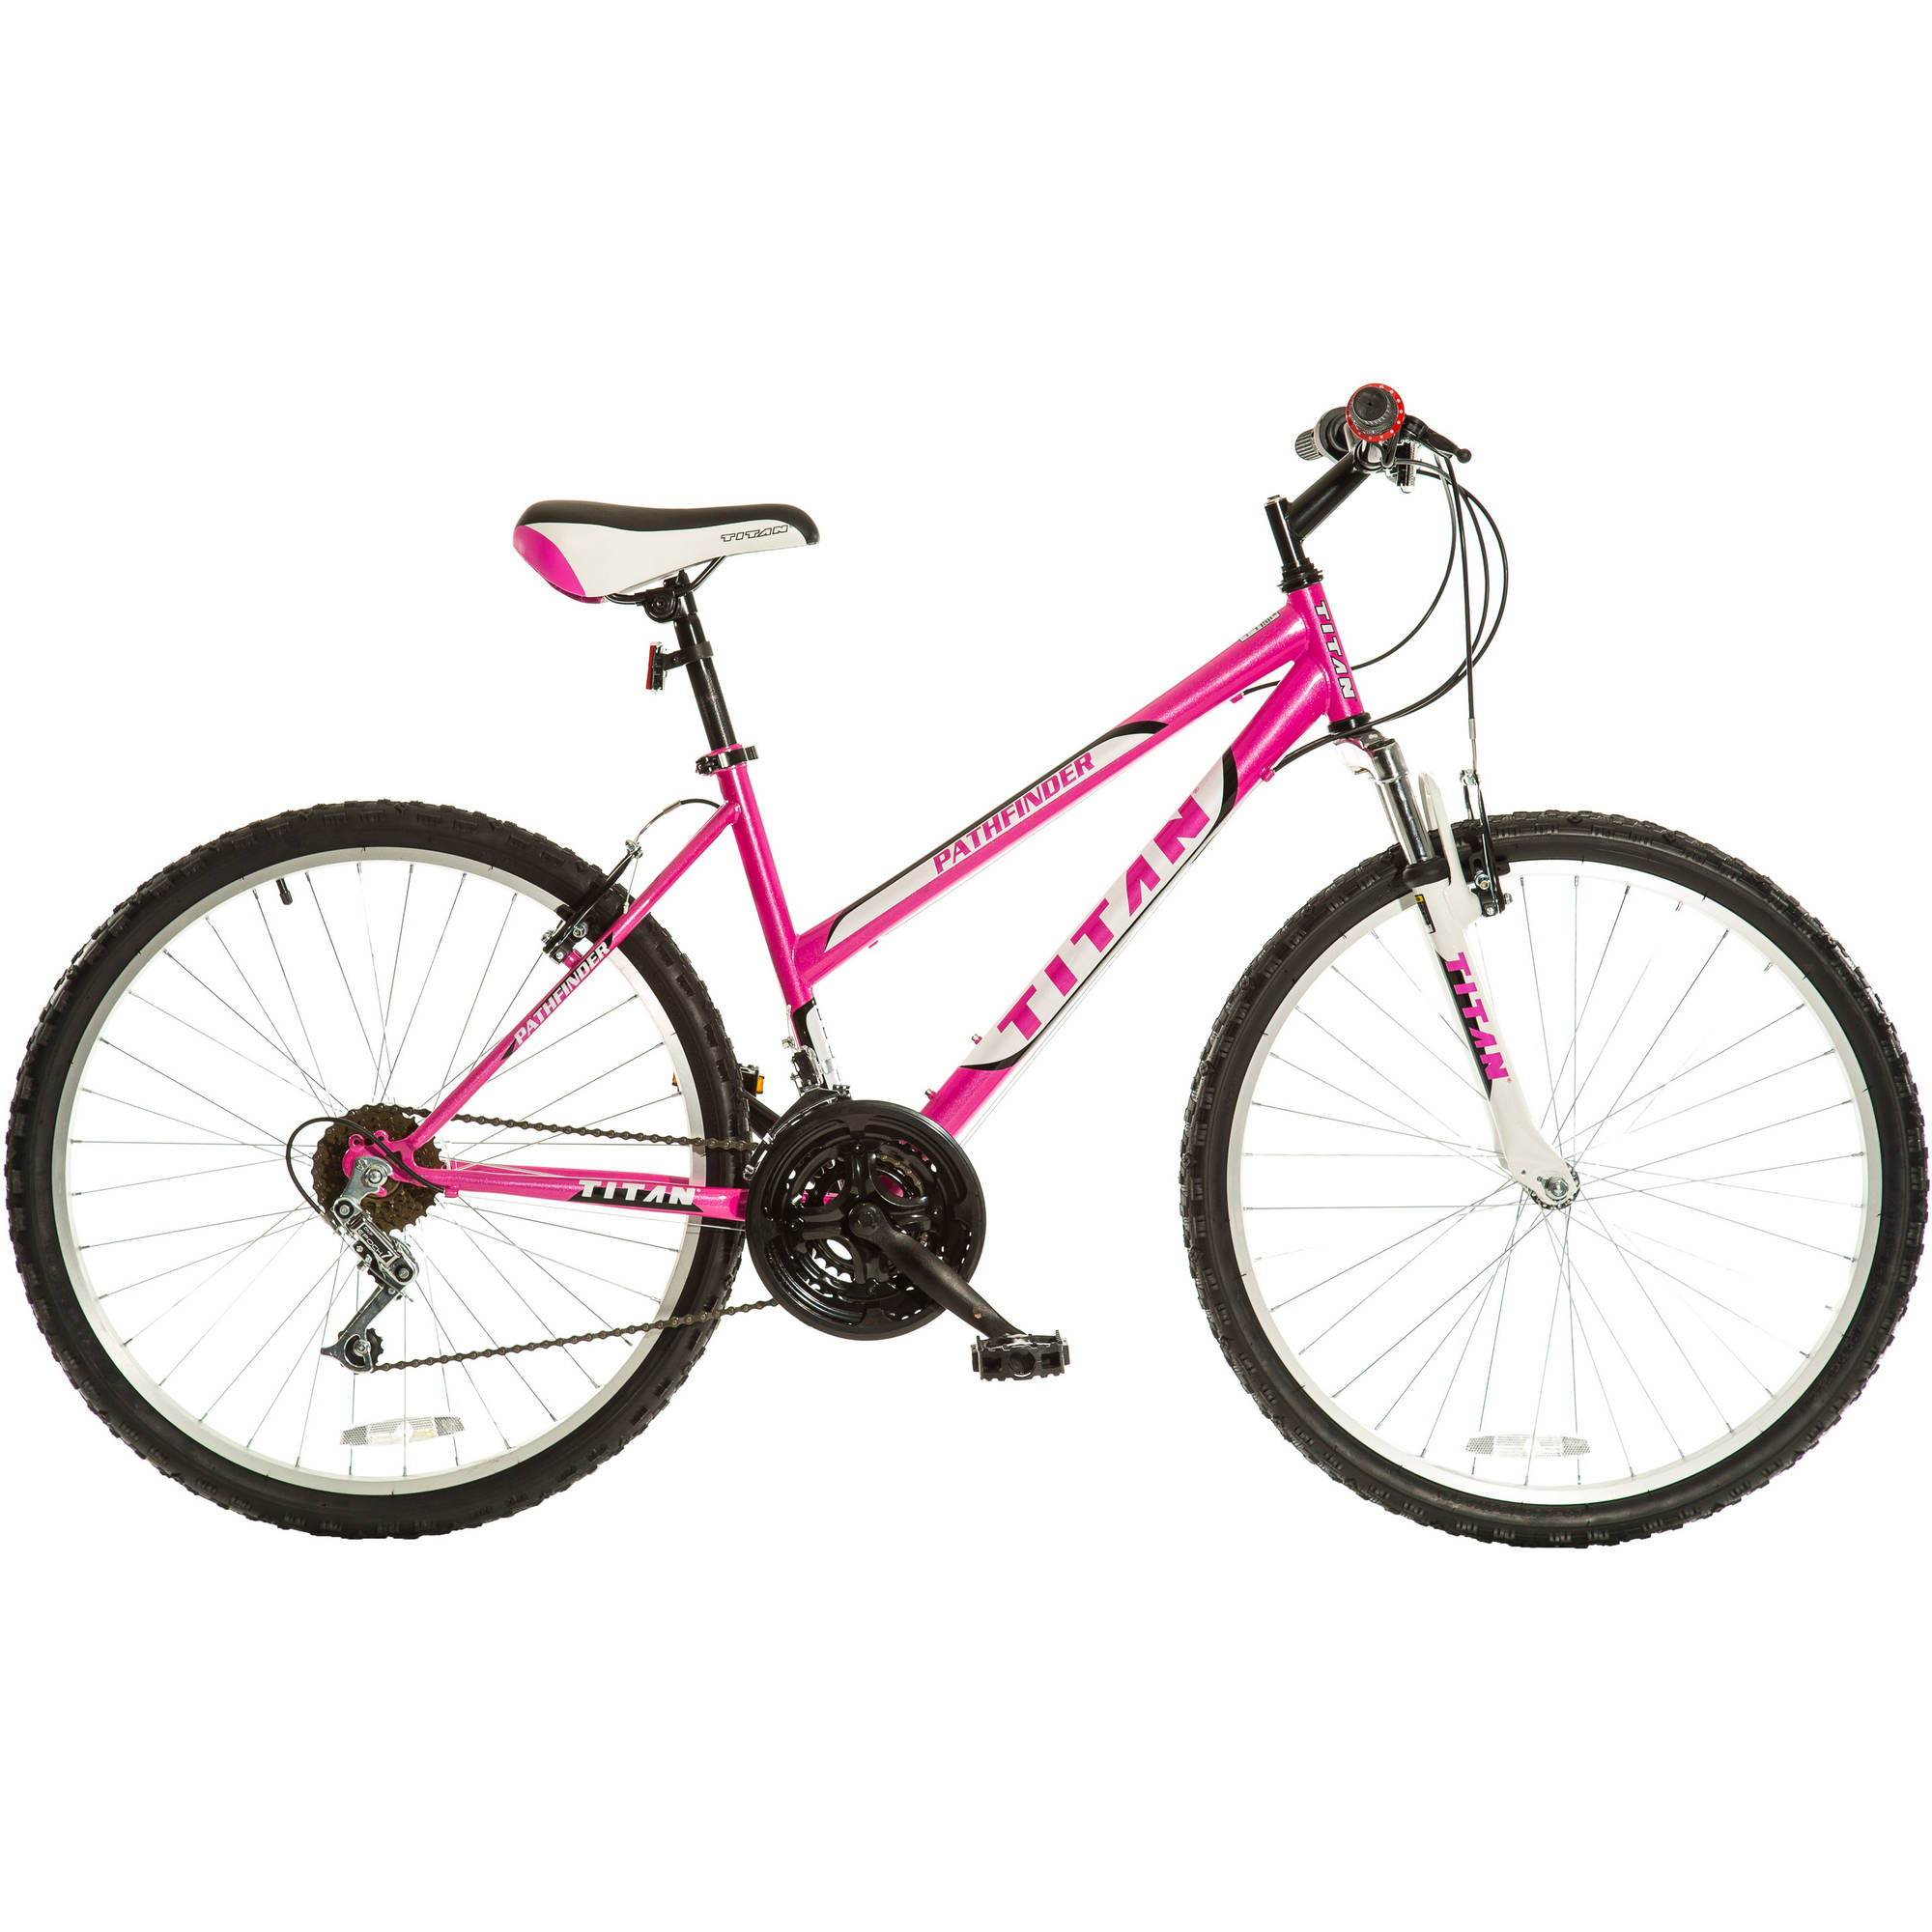 "26"" Titan Pathfinder Women's 18-Speed Suspension Mountain Bike, Hot Pink"